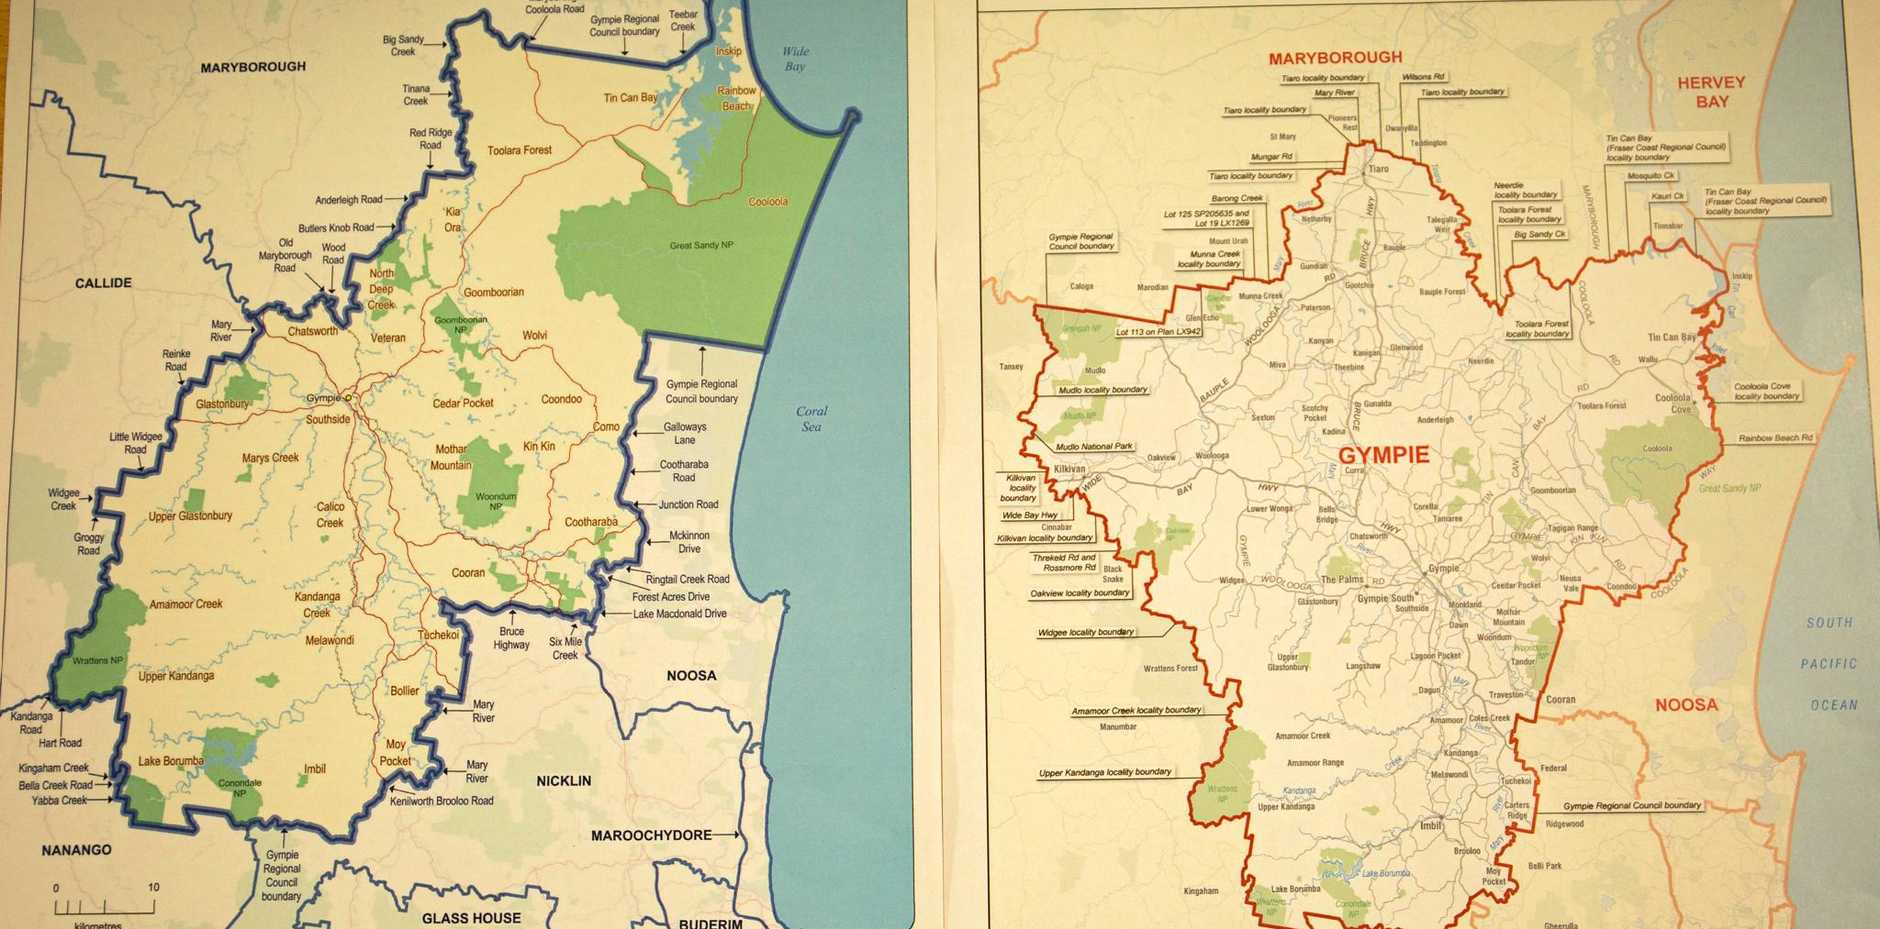 A VERY DIFFERENT LOOK: How the Gympie electorate looks under the proposed changes.